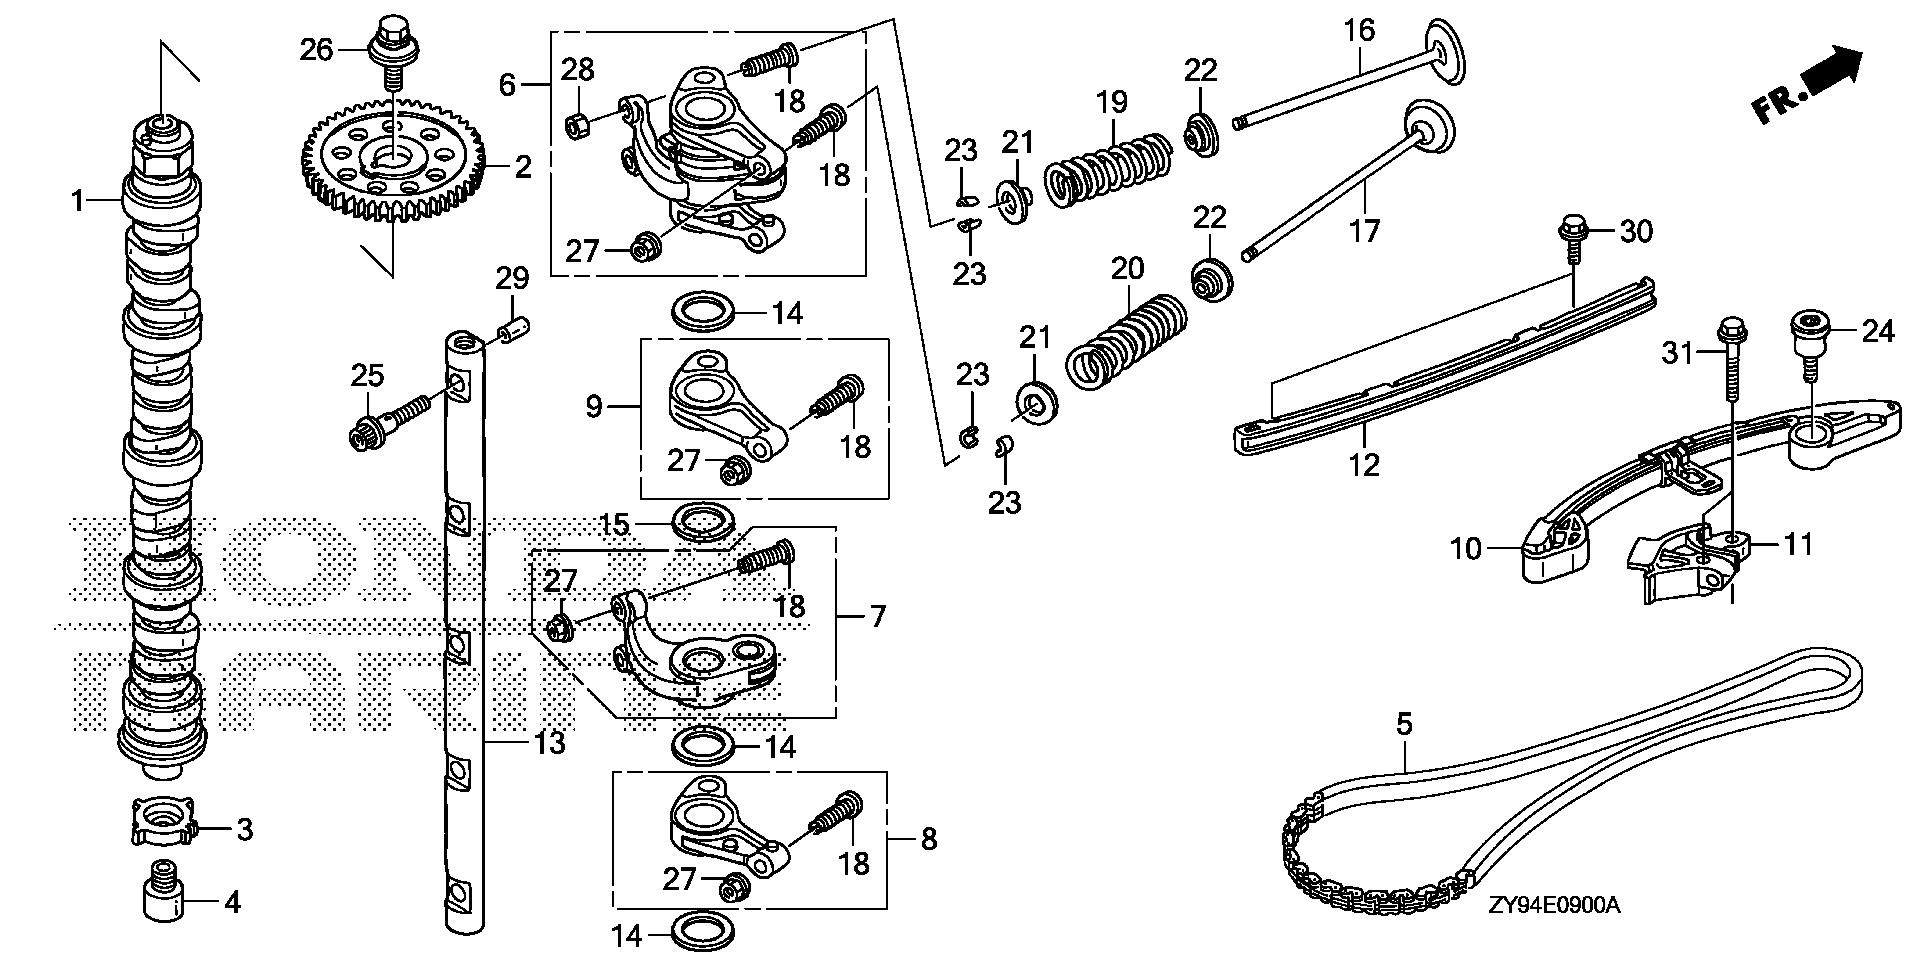 2006 honda odyssey serpentine belt diagram are special tools honda bf 90 wiring harness diagram 2006 honda odyssey ignition pooptronica